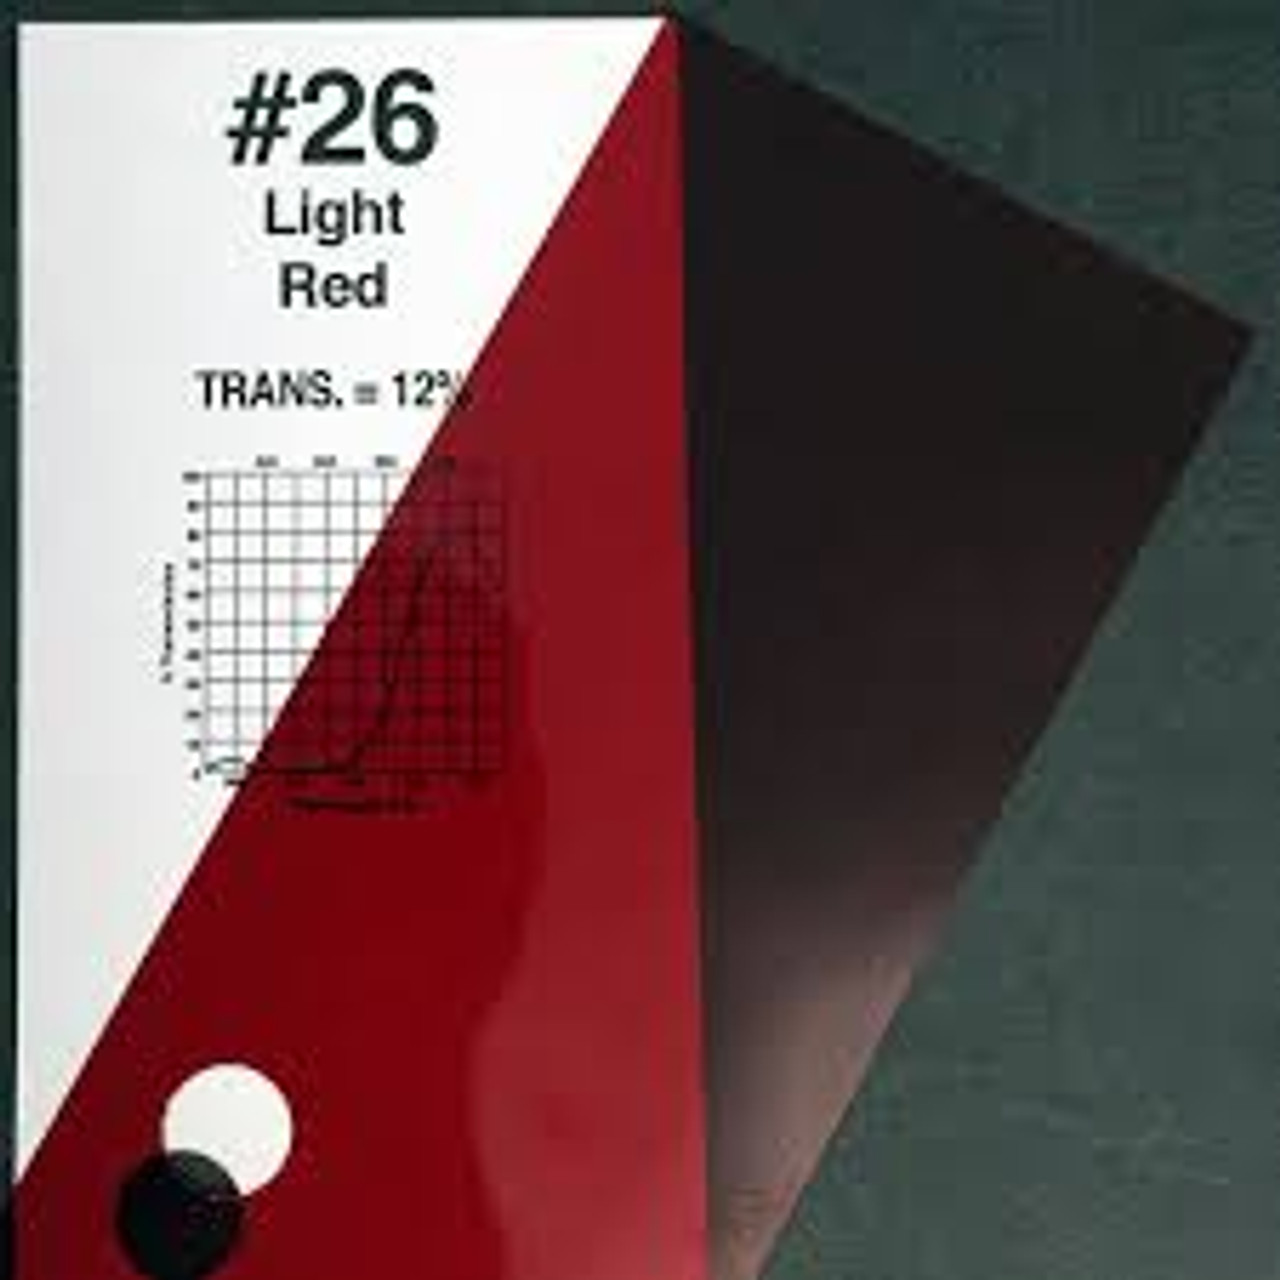 #0026 Rosco Gels Roscolux Bright Red, 20x24